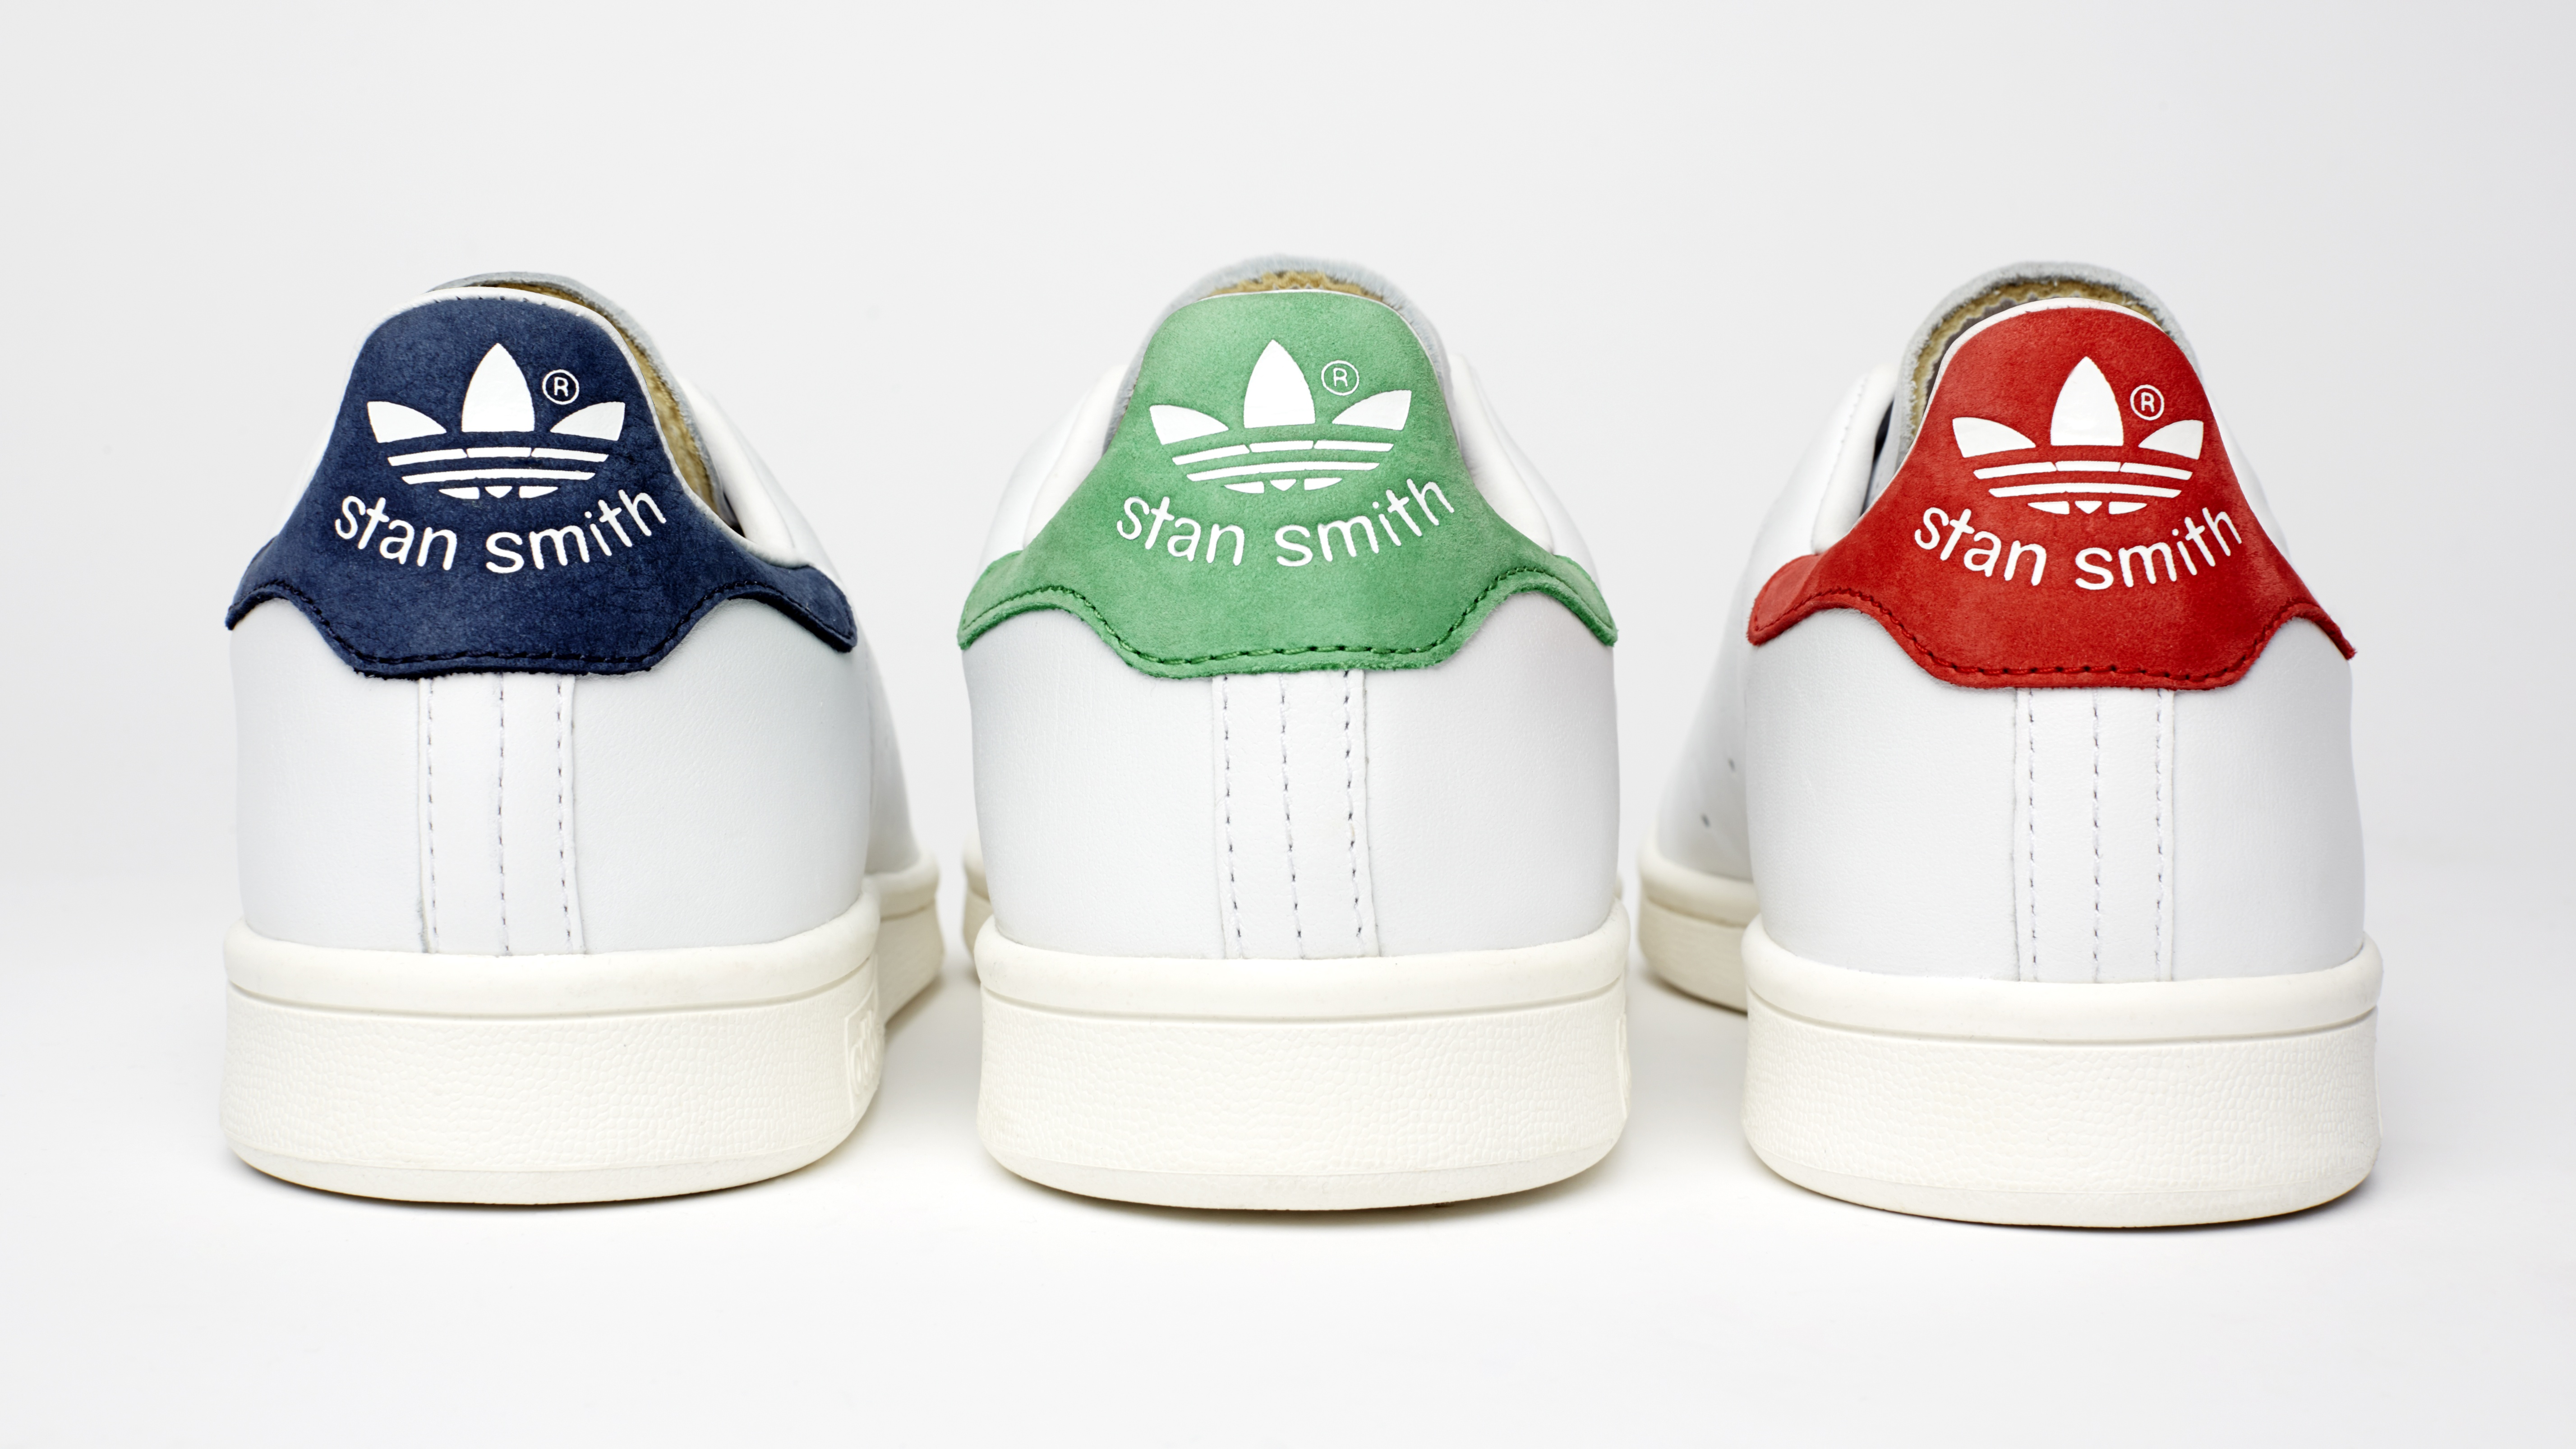 bd9c2944f1f7 Adidas is making Stan Smiths and Superstars harder to find — Quartzy